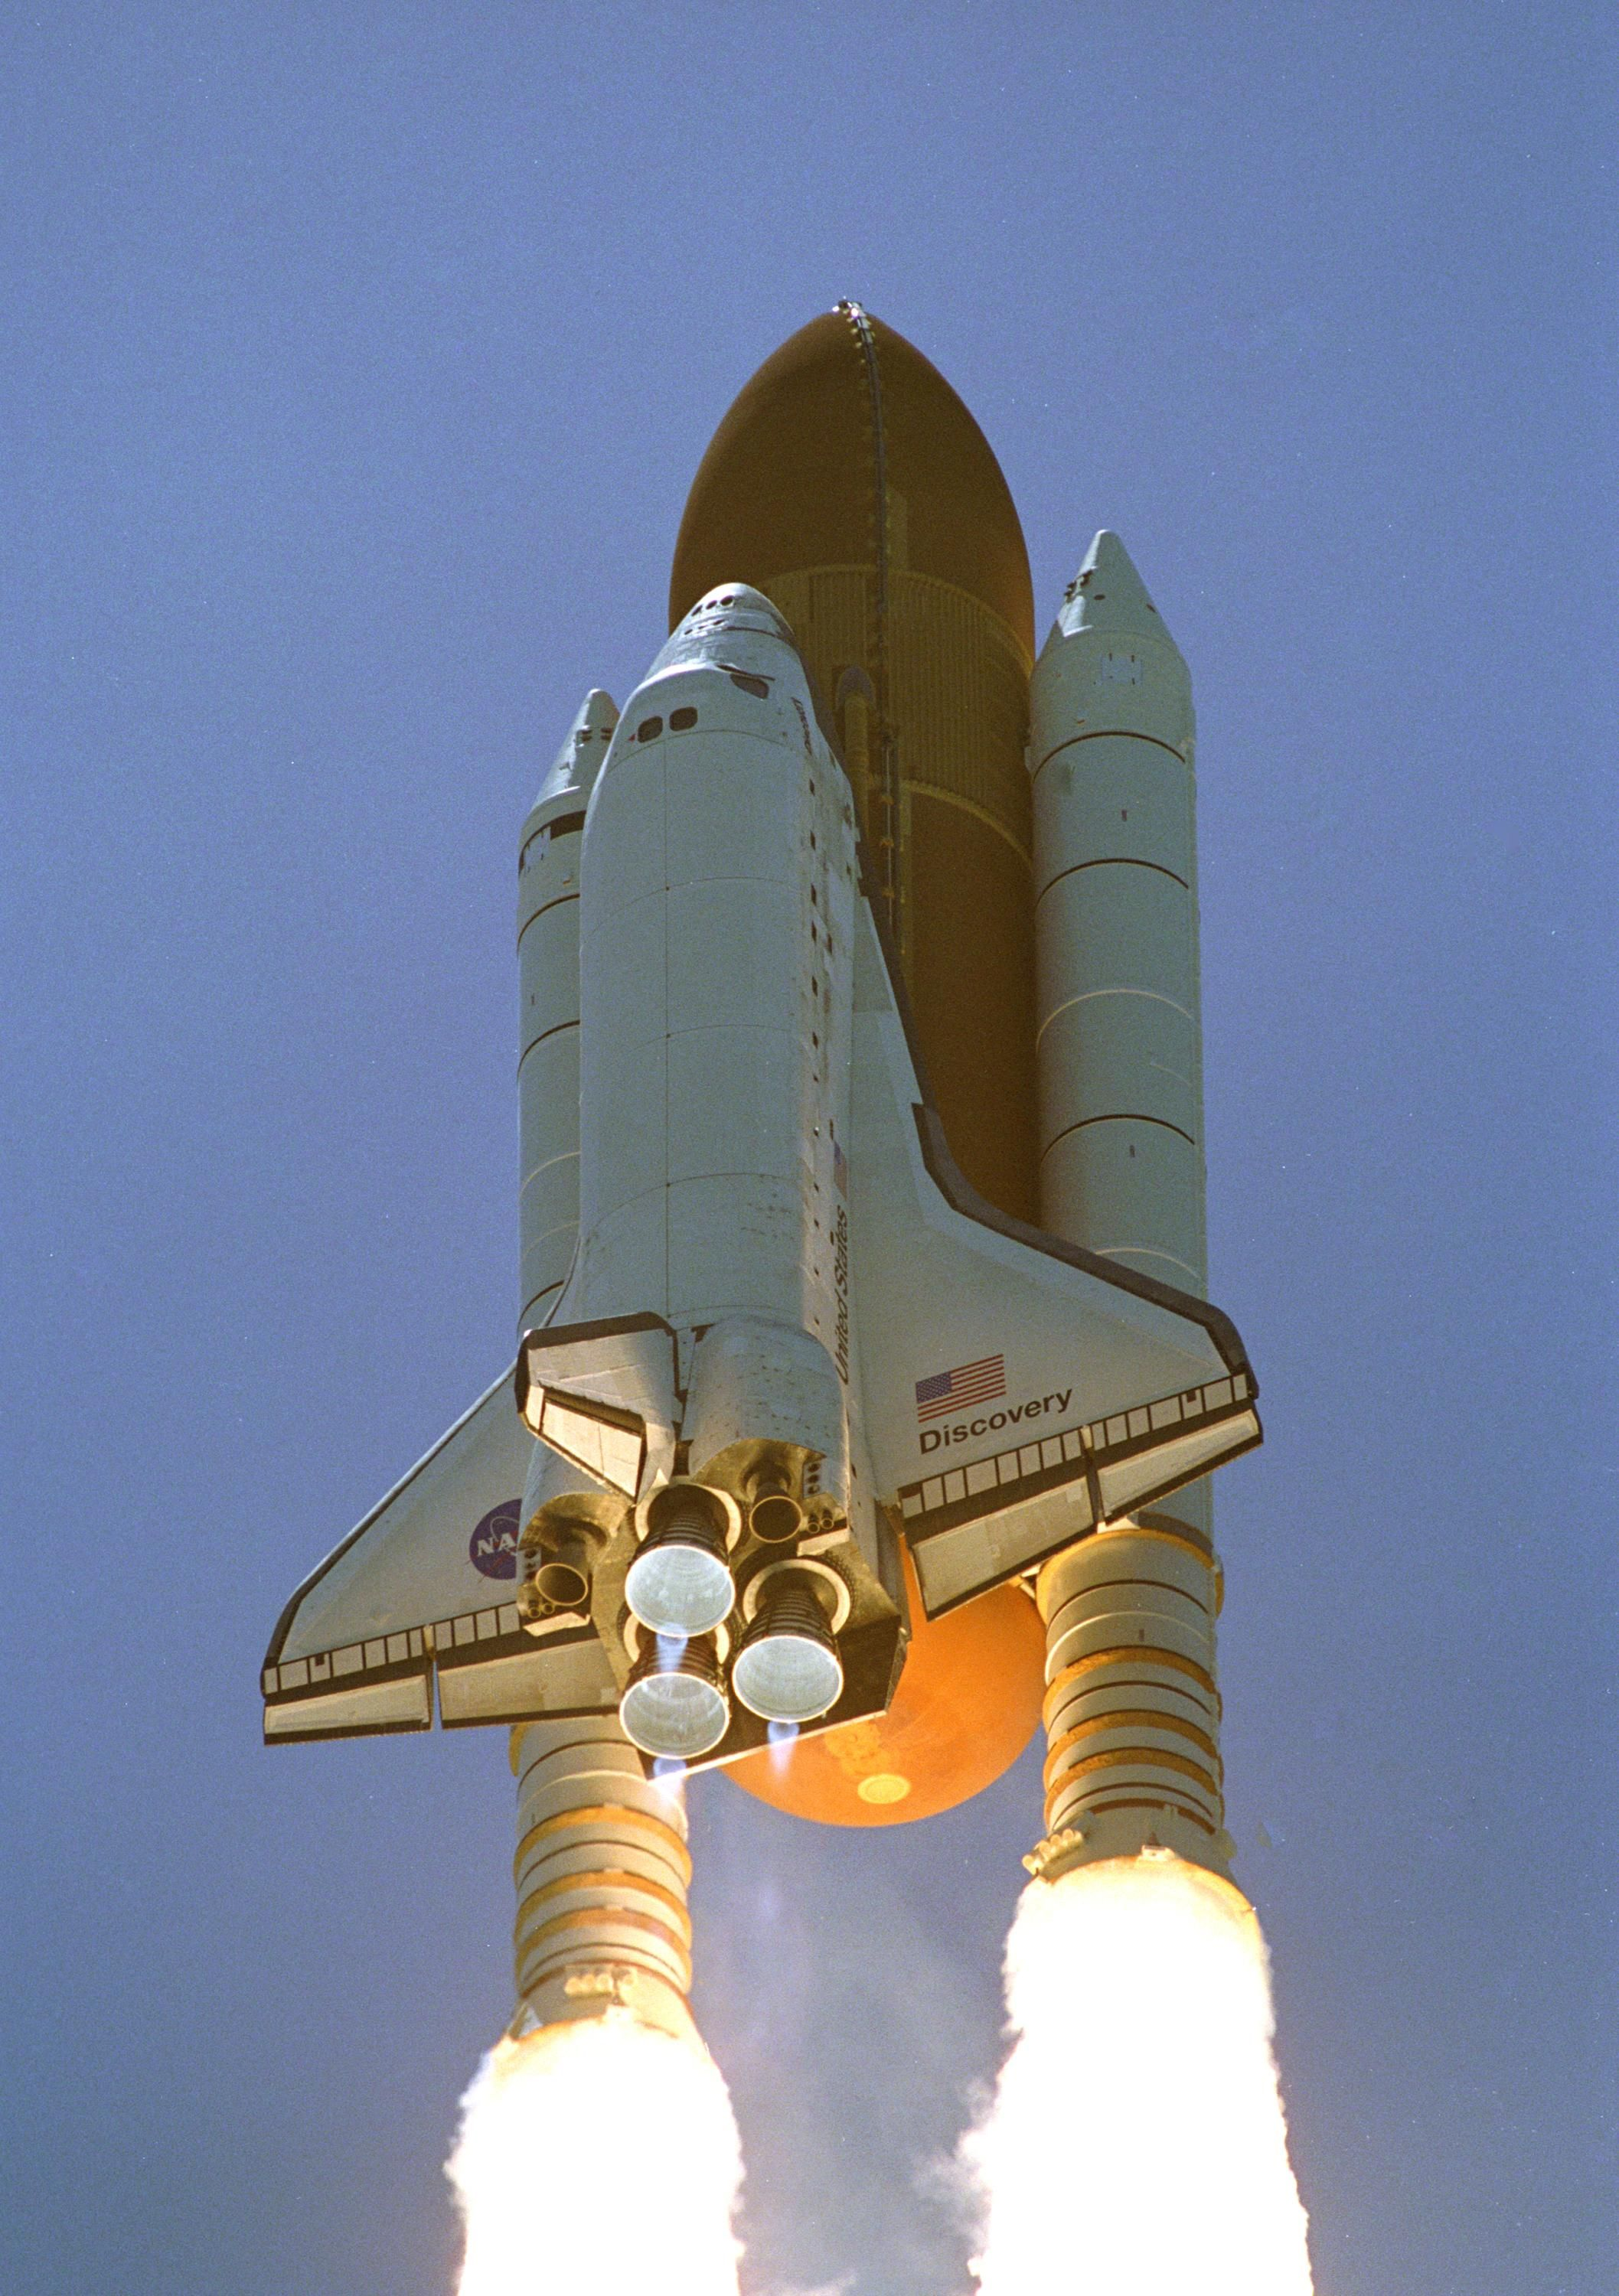 visit space shuttle discovery - photo #24